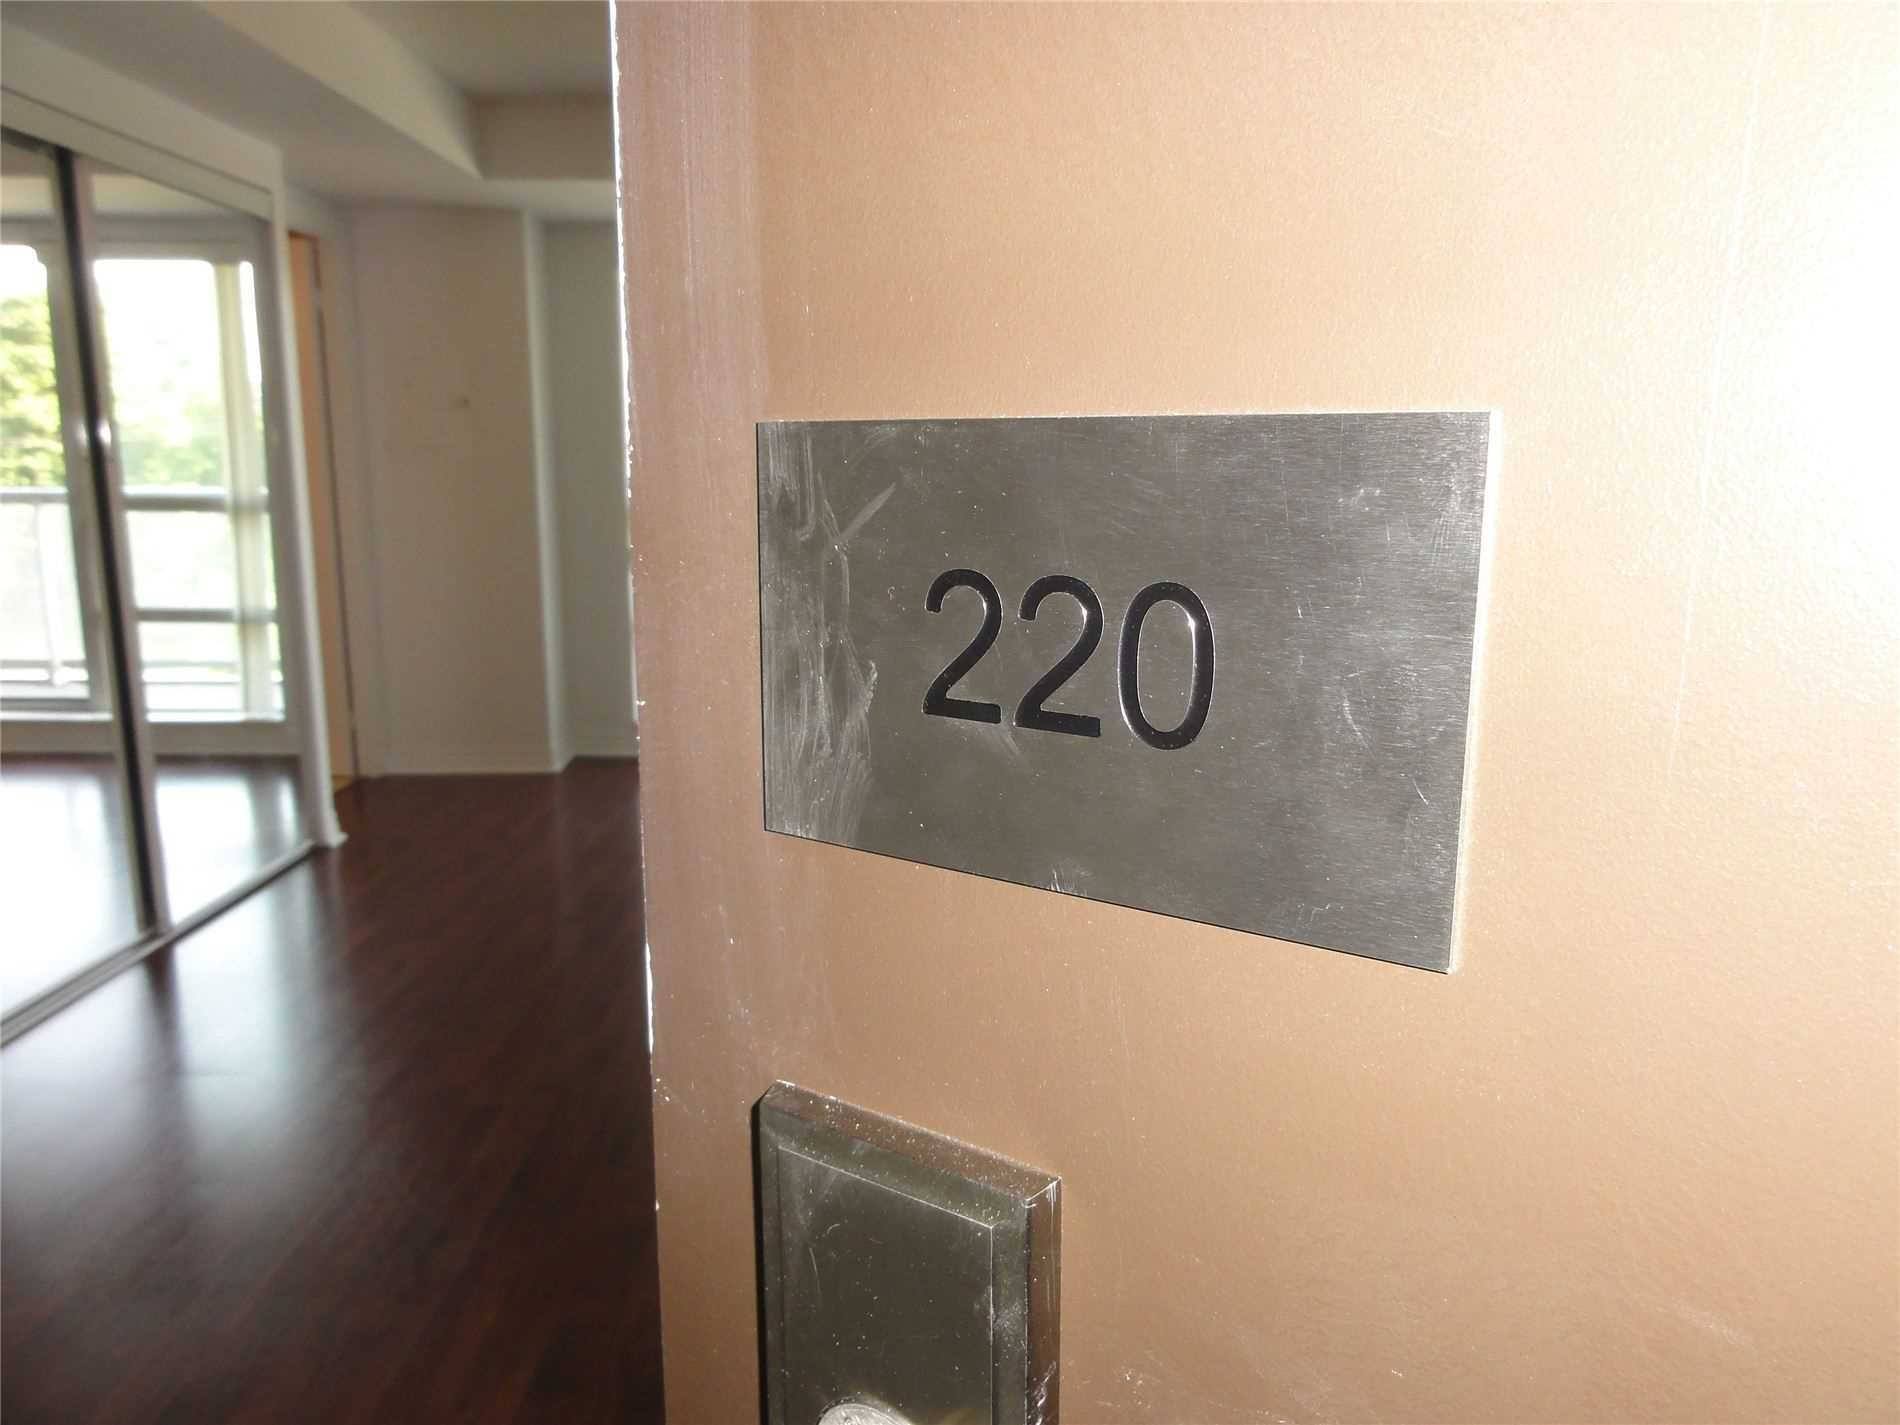 2035 Sheppard Ave E, unit 220 for sale in Toronto - image #2